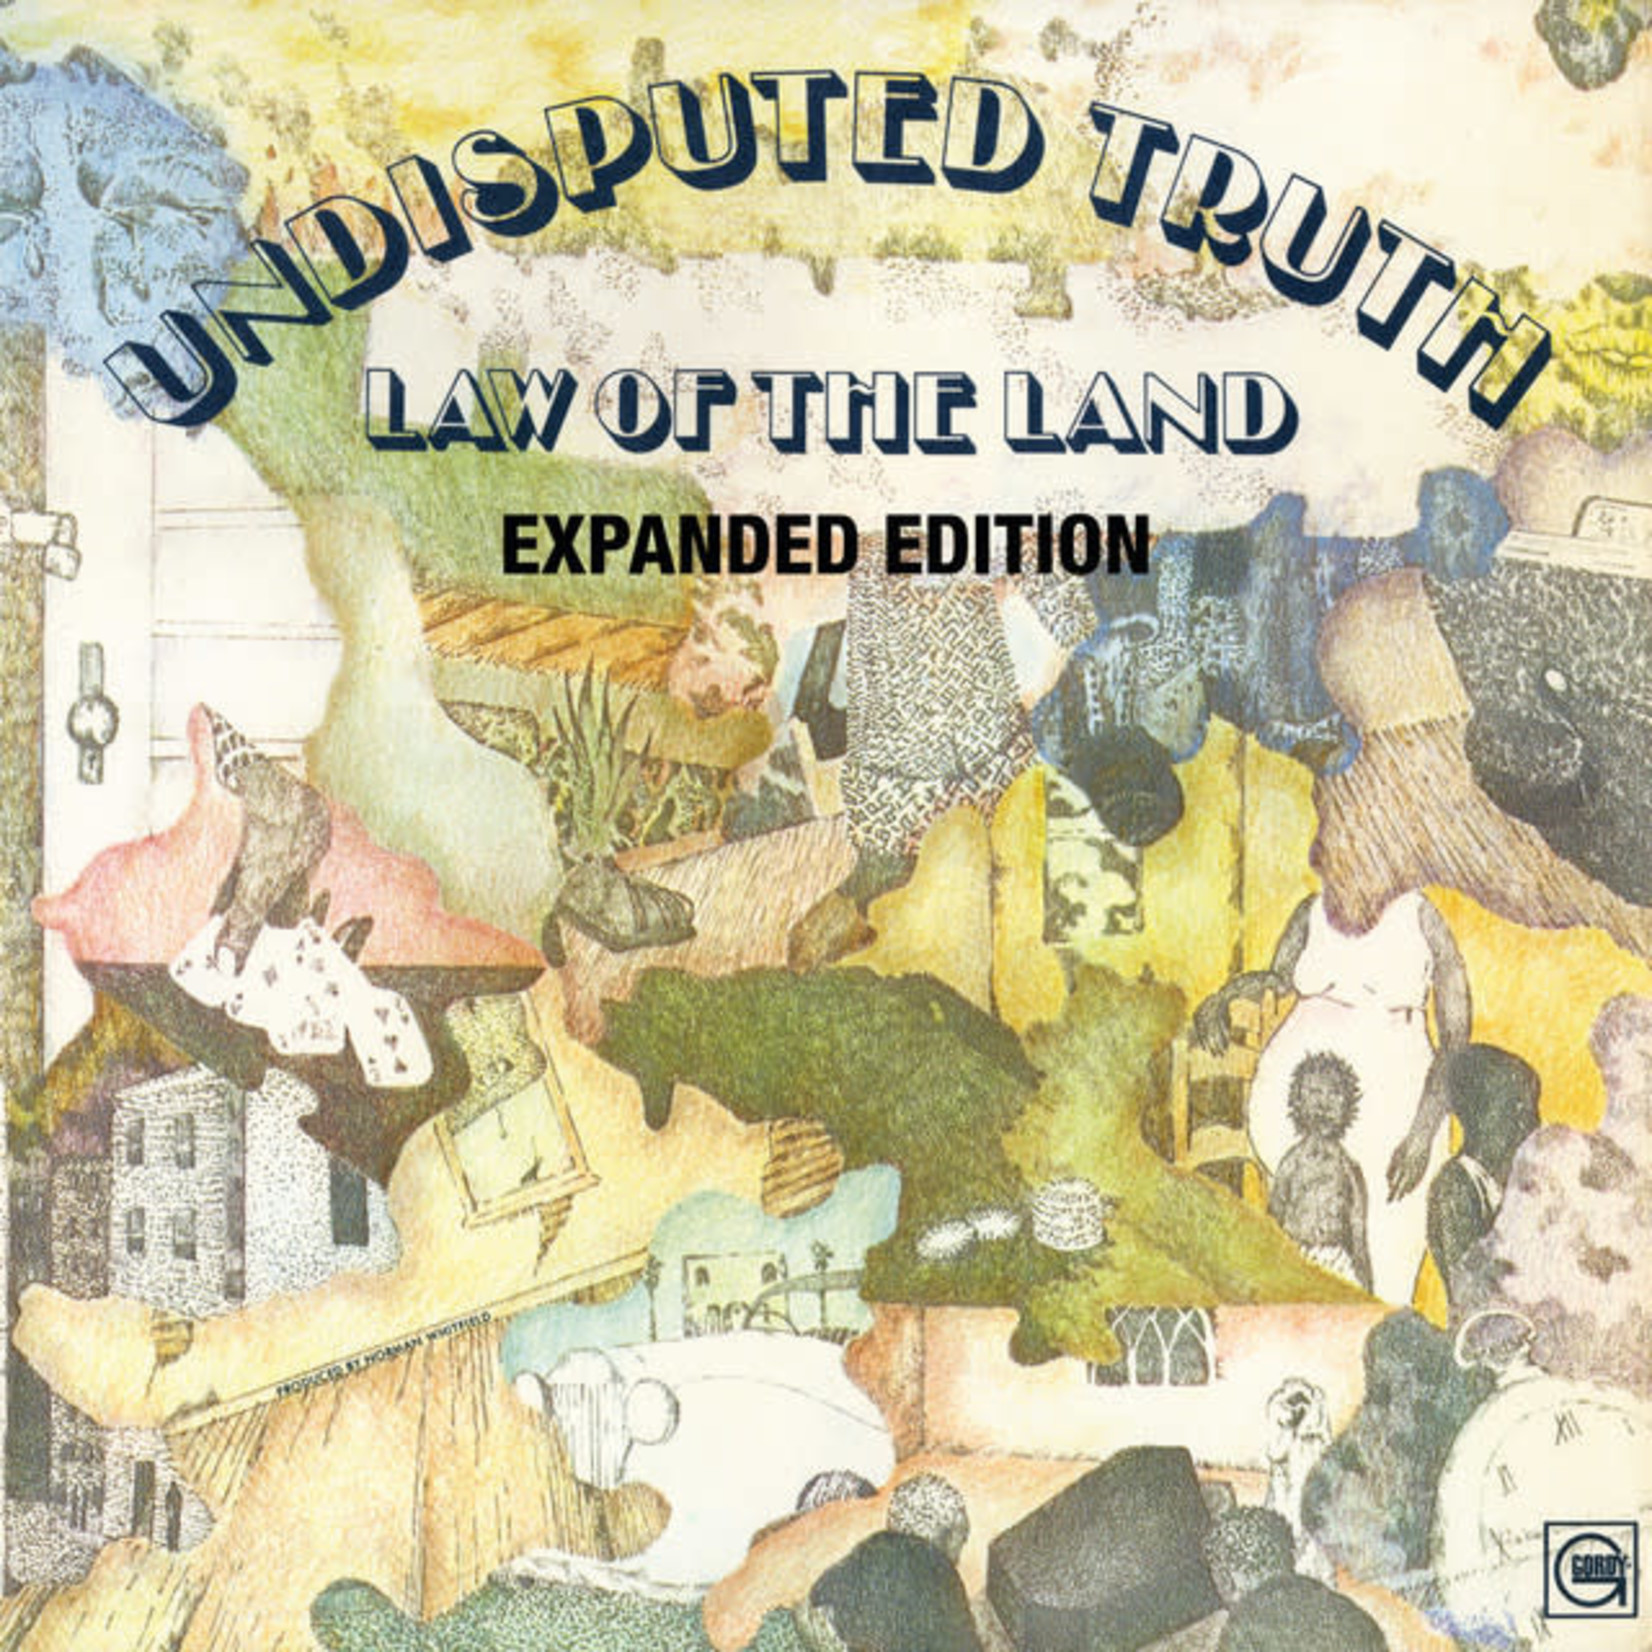 Vinyl The Undisputed Truth - Law Of The Land